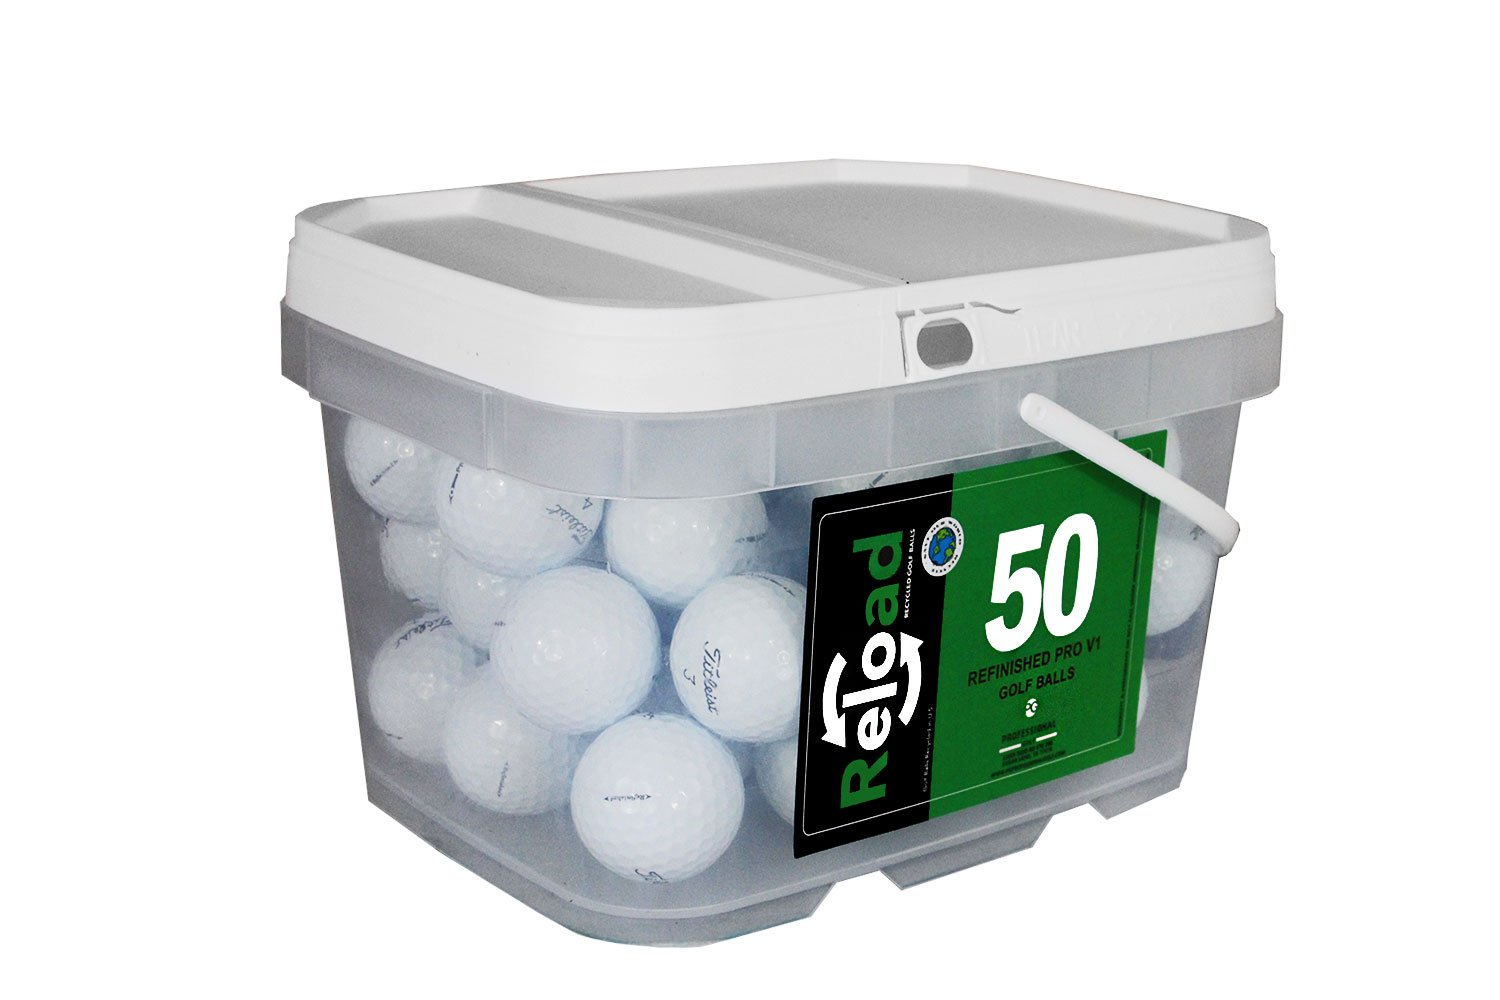 Reload Recycled Golf Balls Titleist Pro v1 Refurbished Golf Balls (50 Pack)